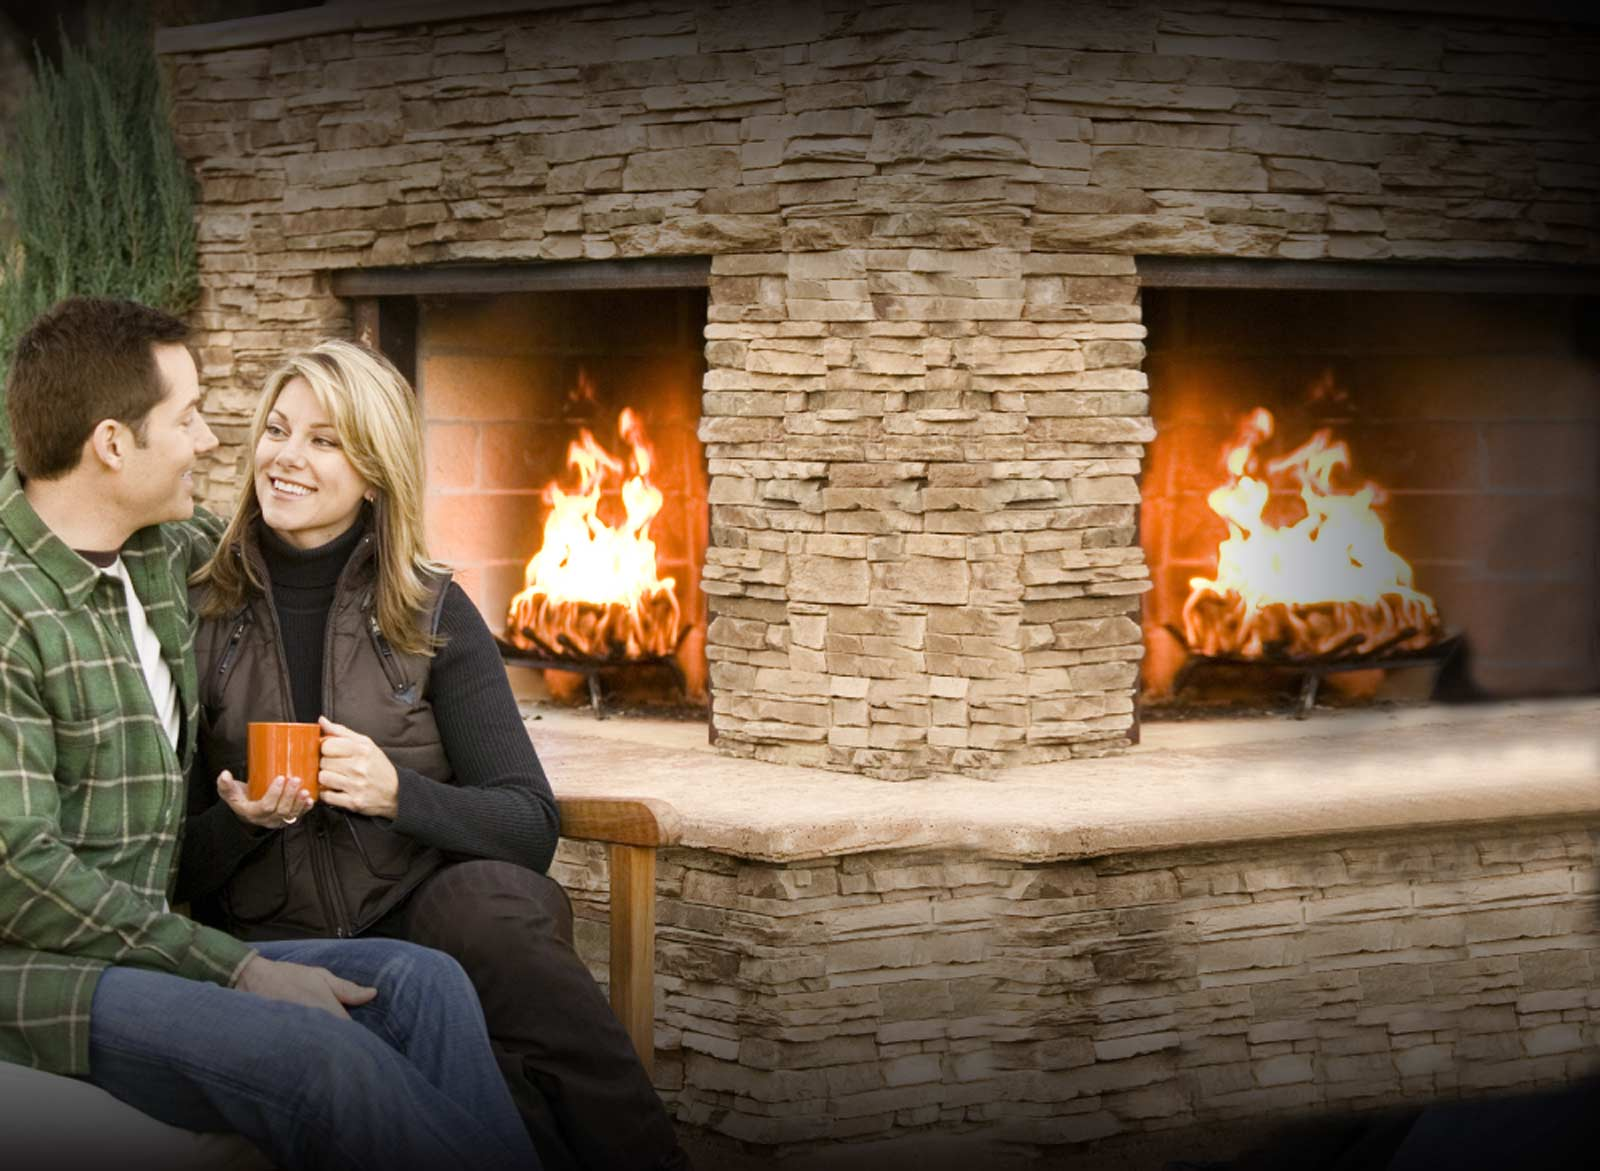 picture of man and woman sitting by fireplace